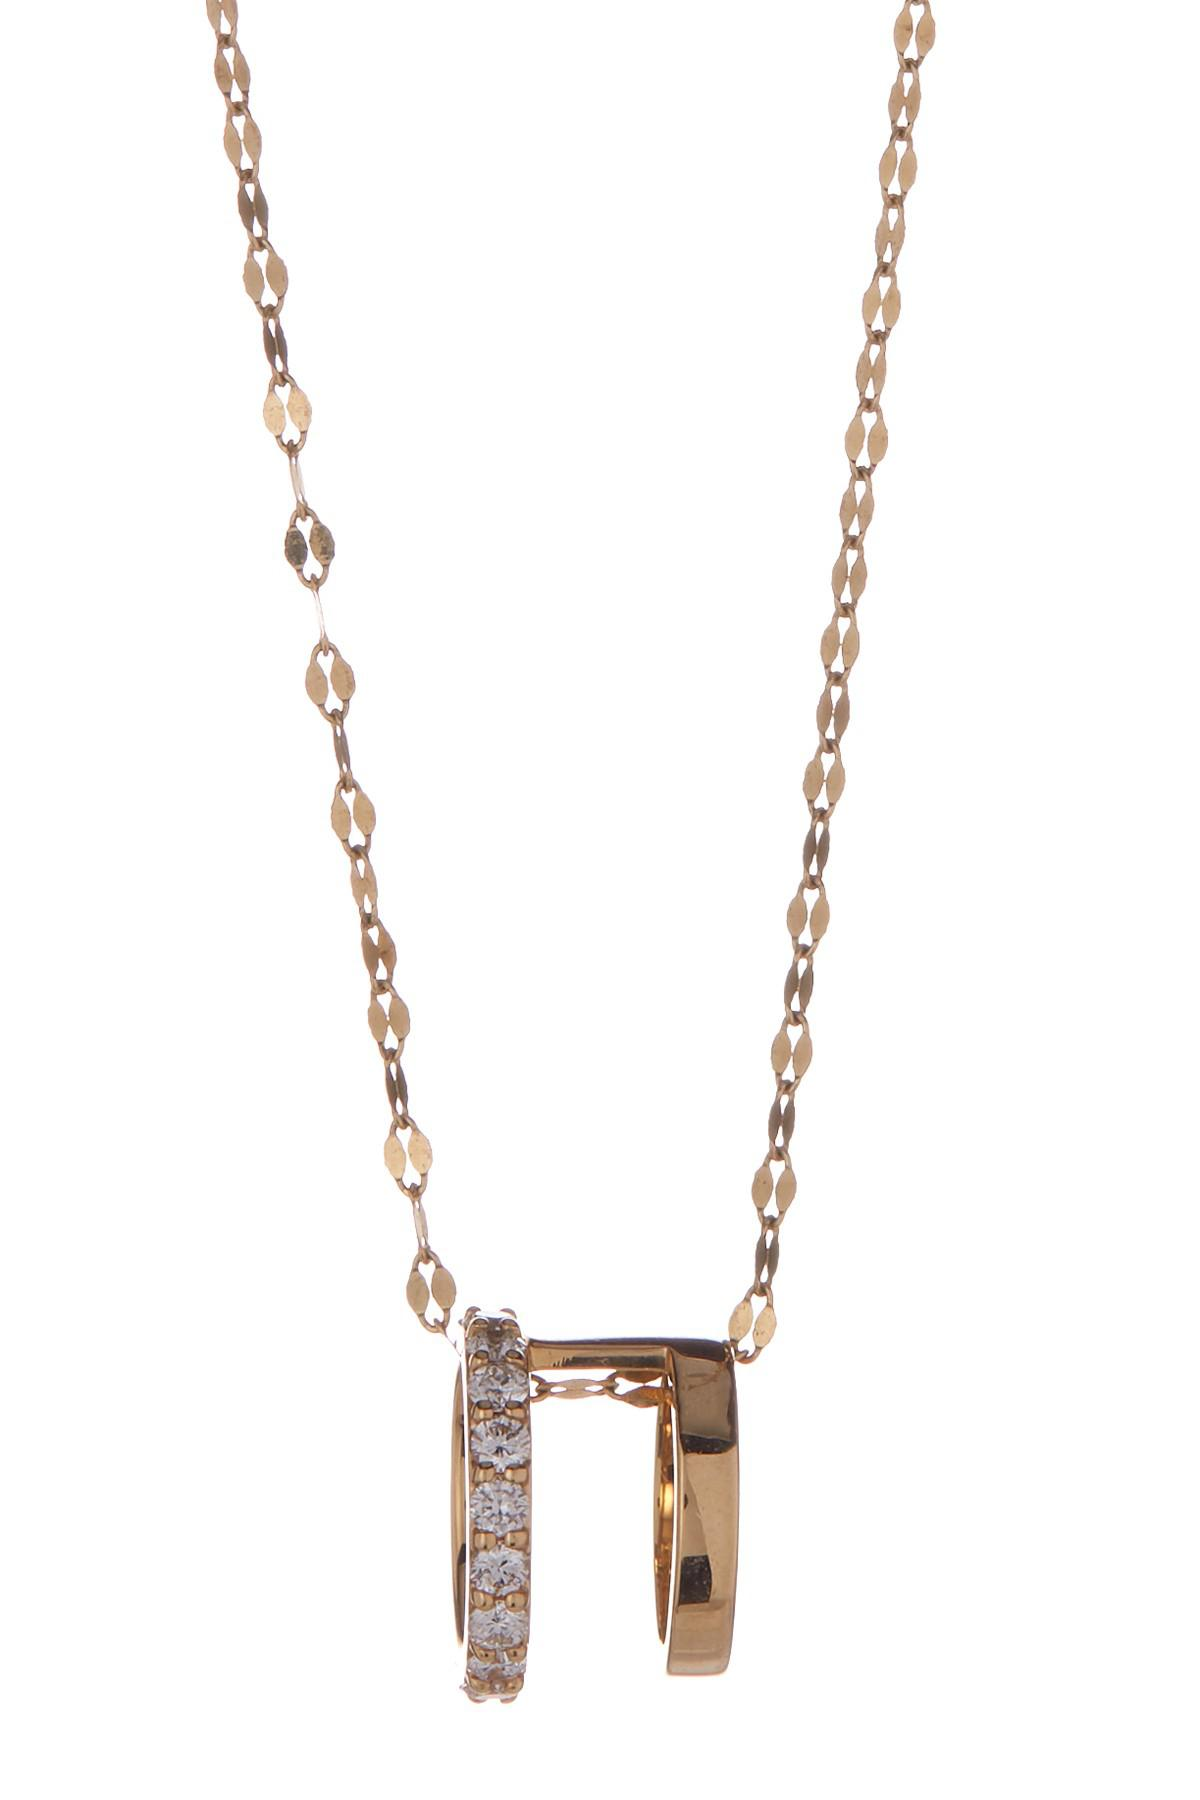 Lana Jewelry LUCK 14K Gold Pendant Necklace with Diamonds rgdy7NguOS